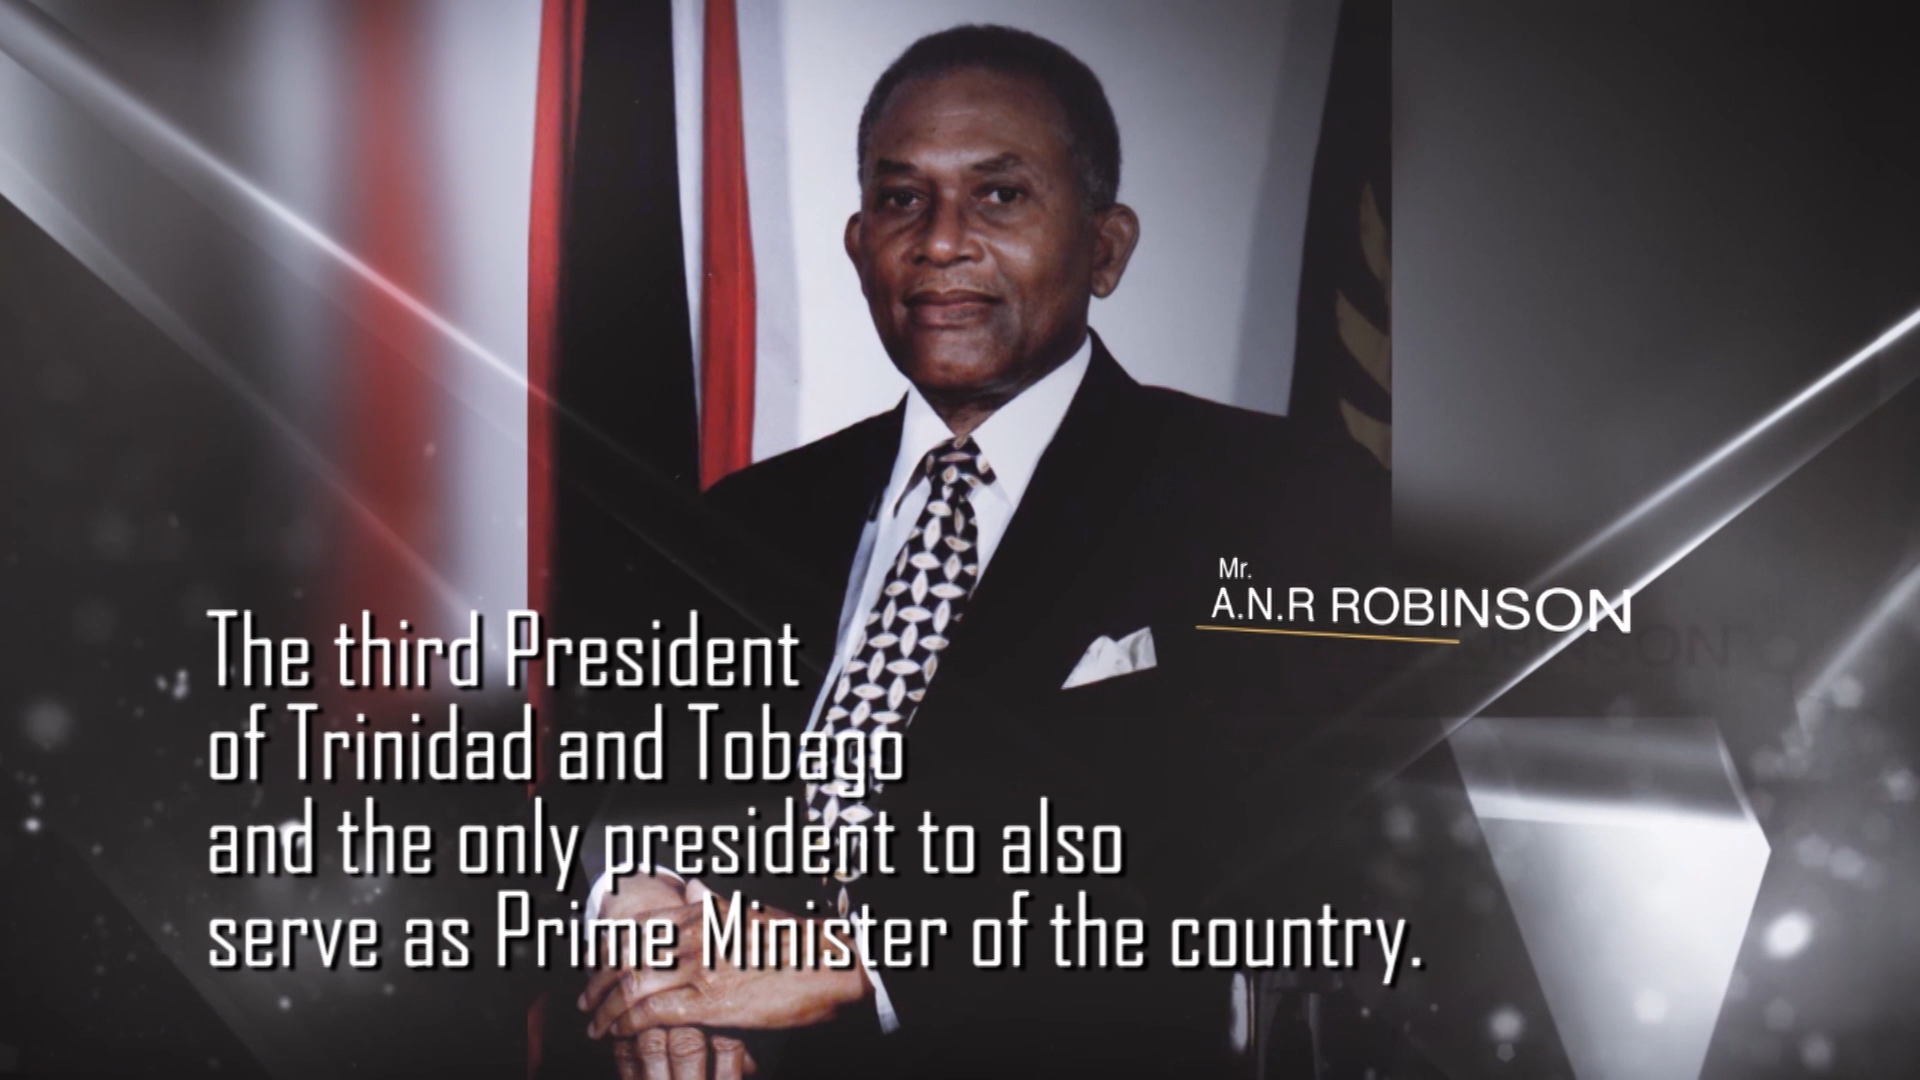 PRESIDENTS OF THE PAST – Mr. A.N.R Robinson